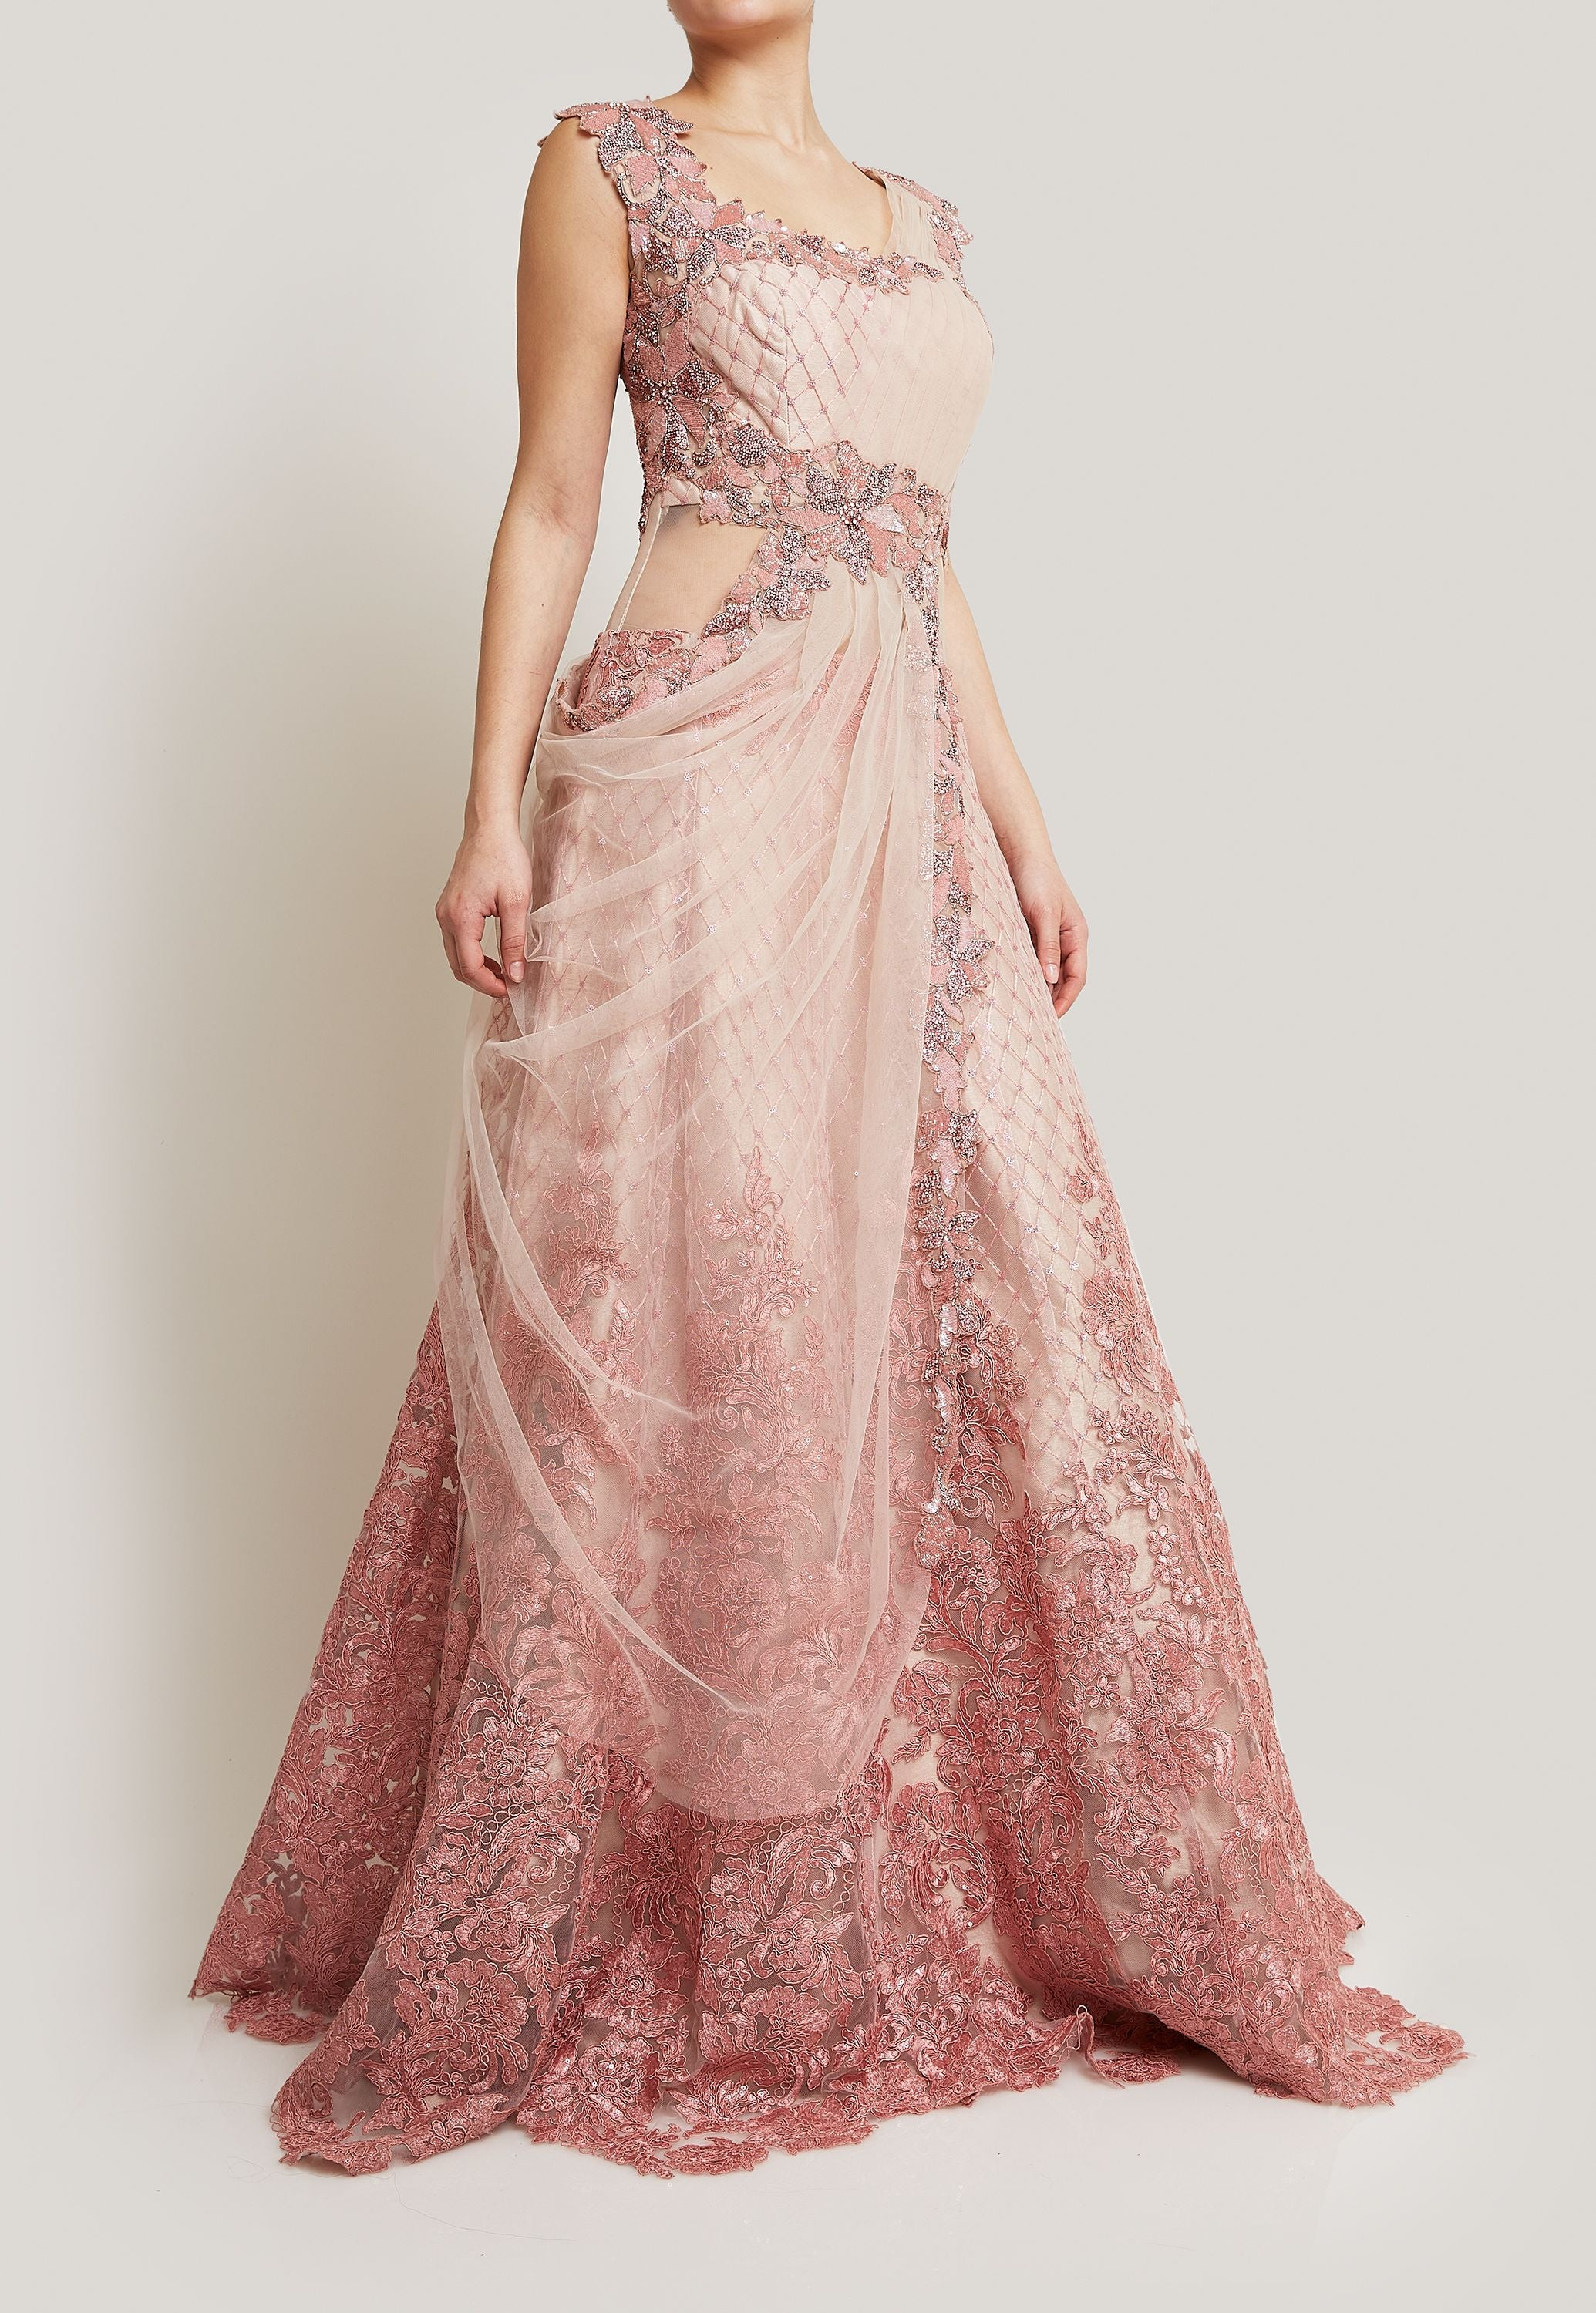 PINK NET SAREE GOWN WITH SEQUIN FLORETS